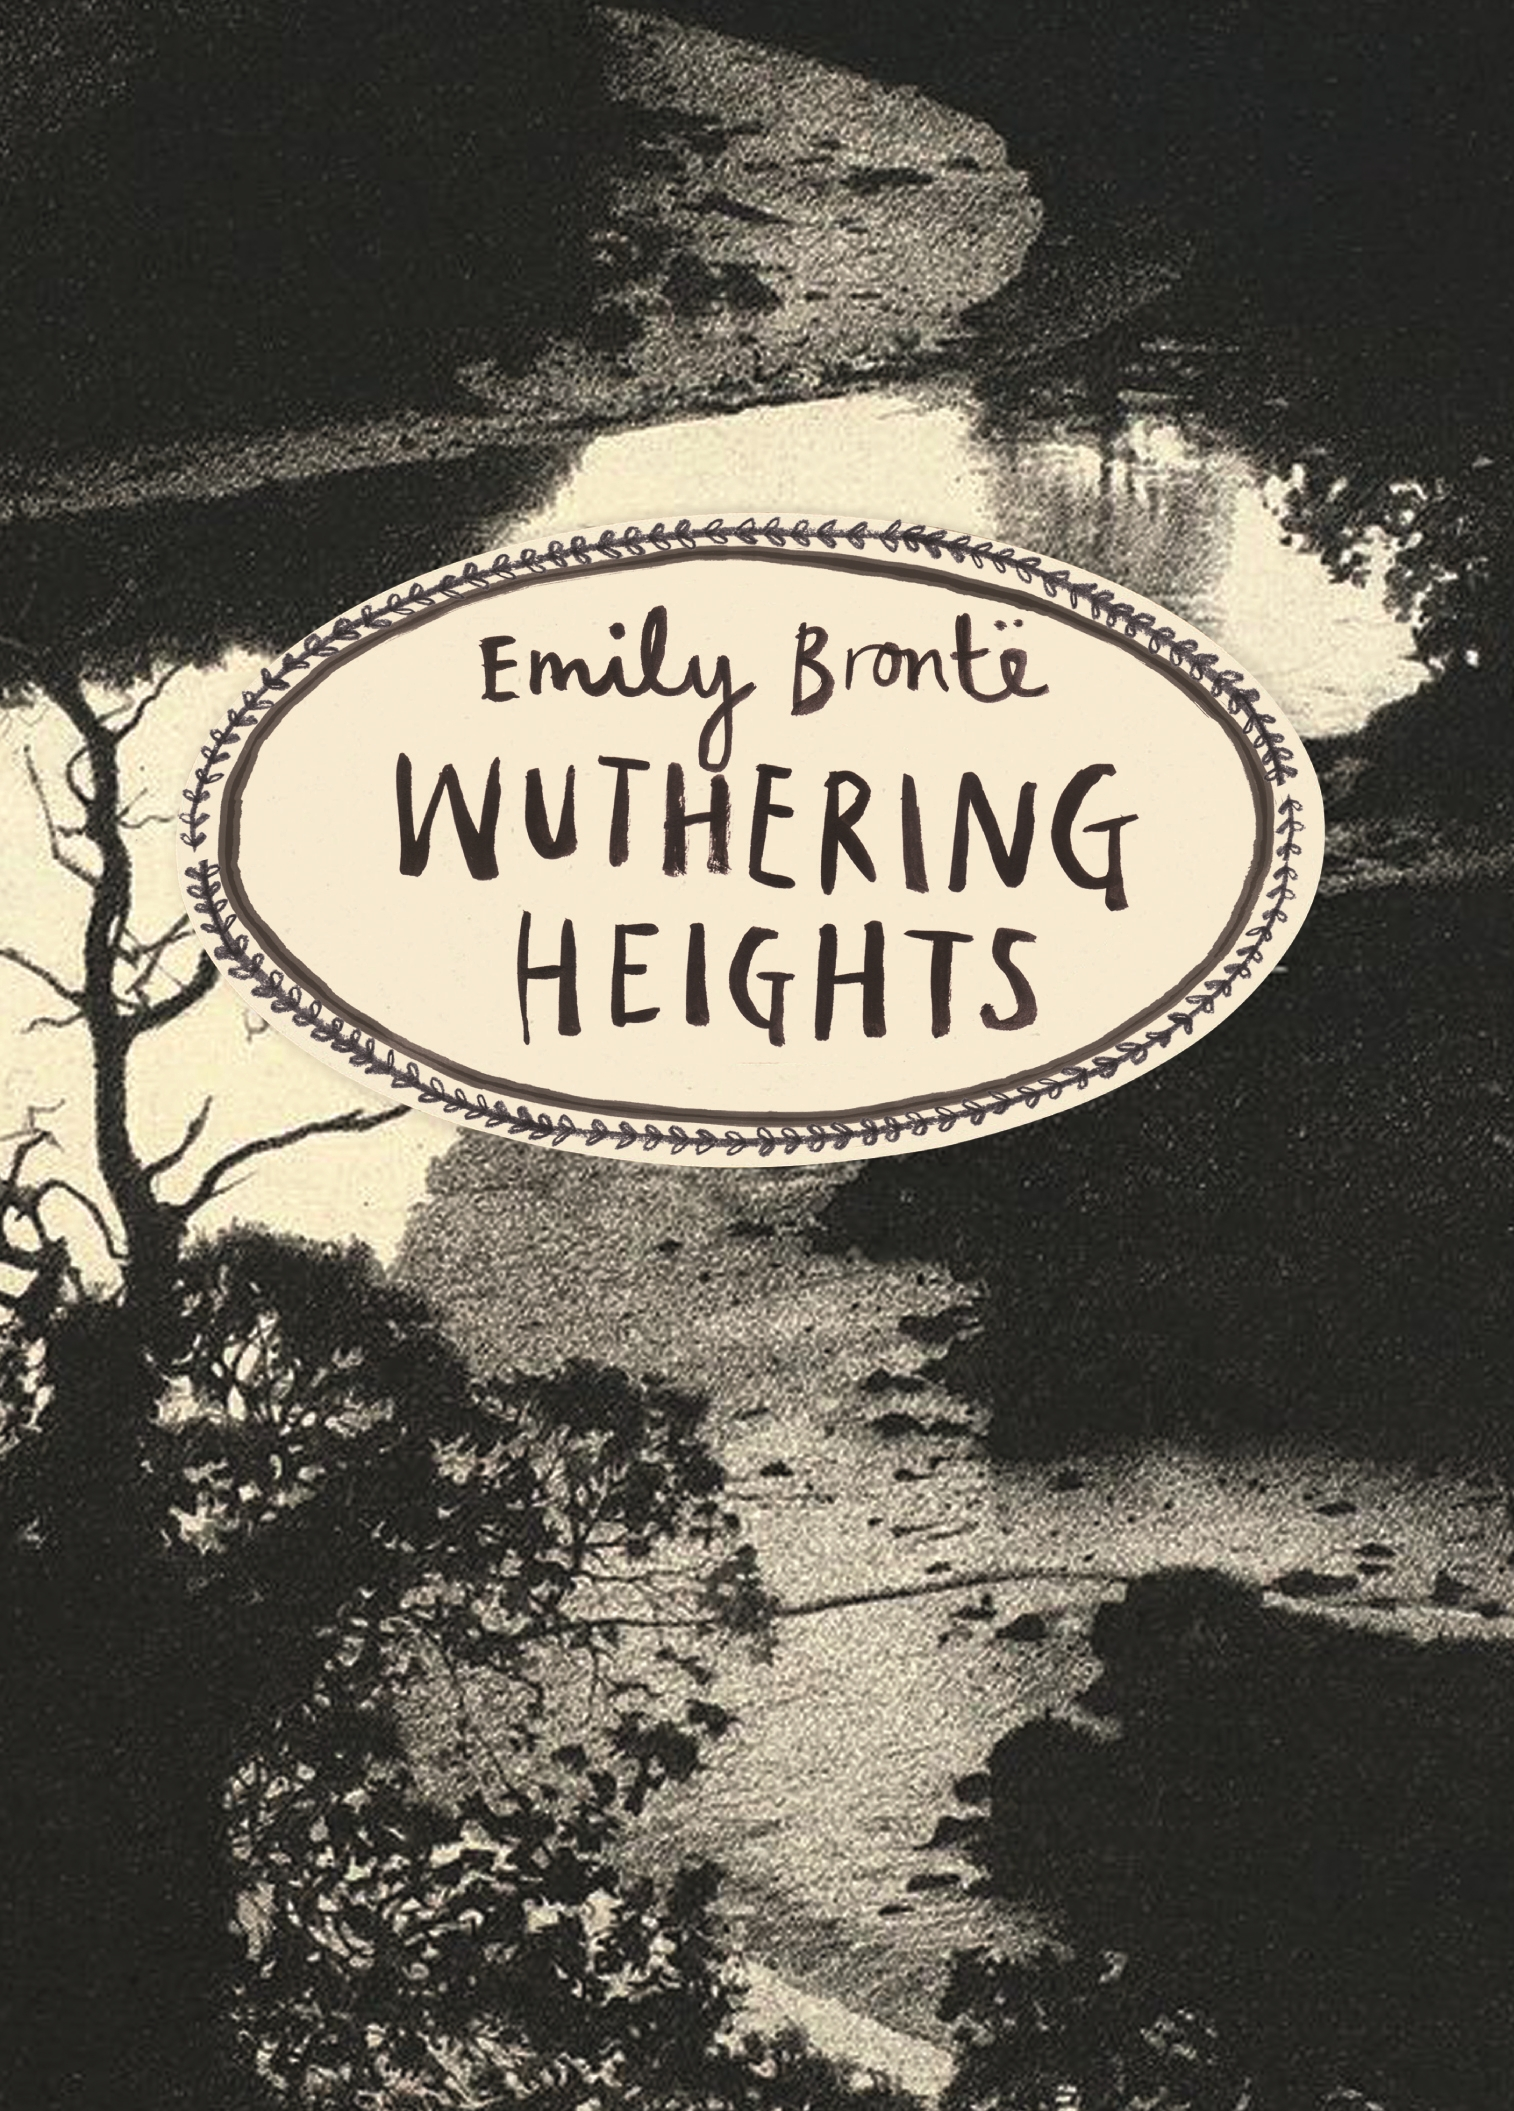 emily brontes writing technique in wuthering heights In emily bronte's novel of gothic fiction, wuthering heights, bronte presents an almost convoluted idea of a supernatural role which would begin to play a significant part in aiding readers to unravel and appreciate the delicate plot of her story.